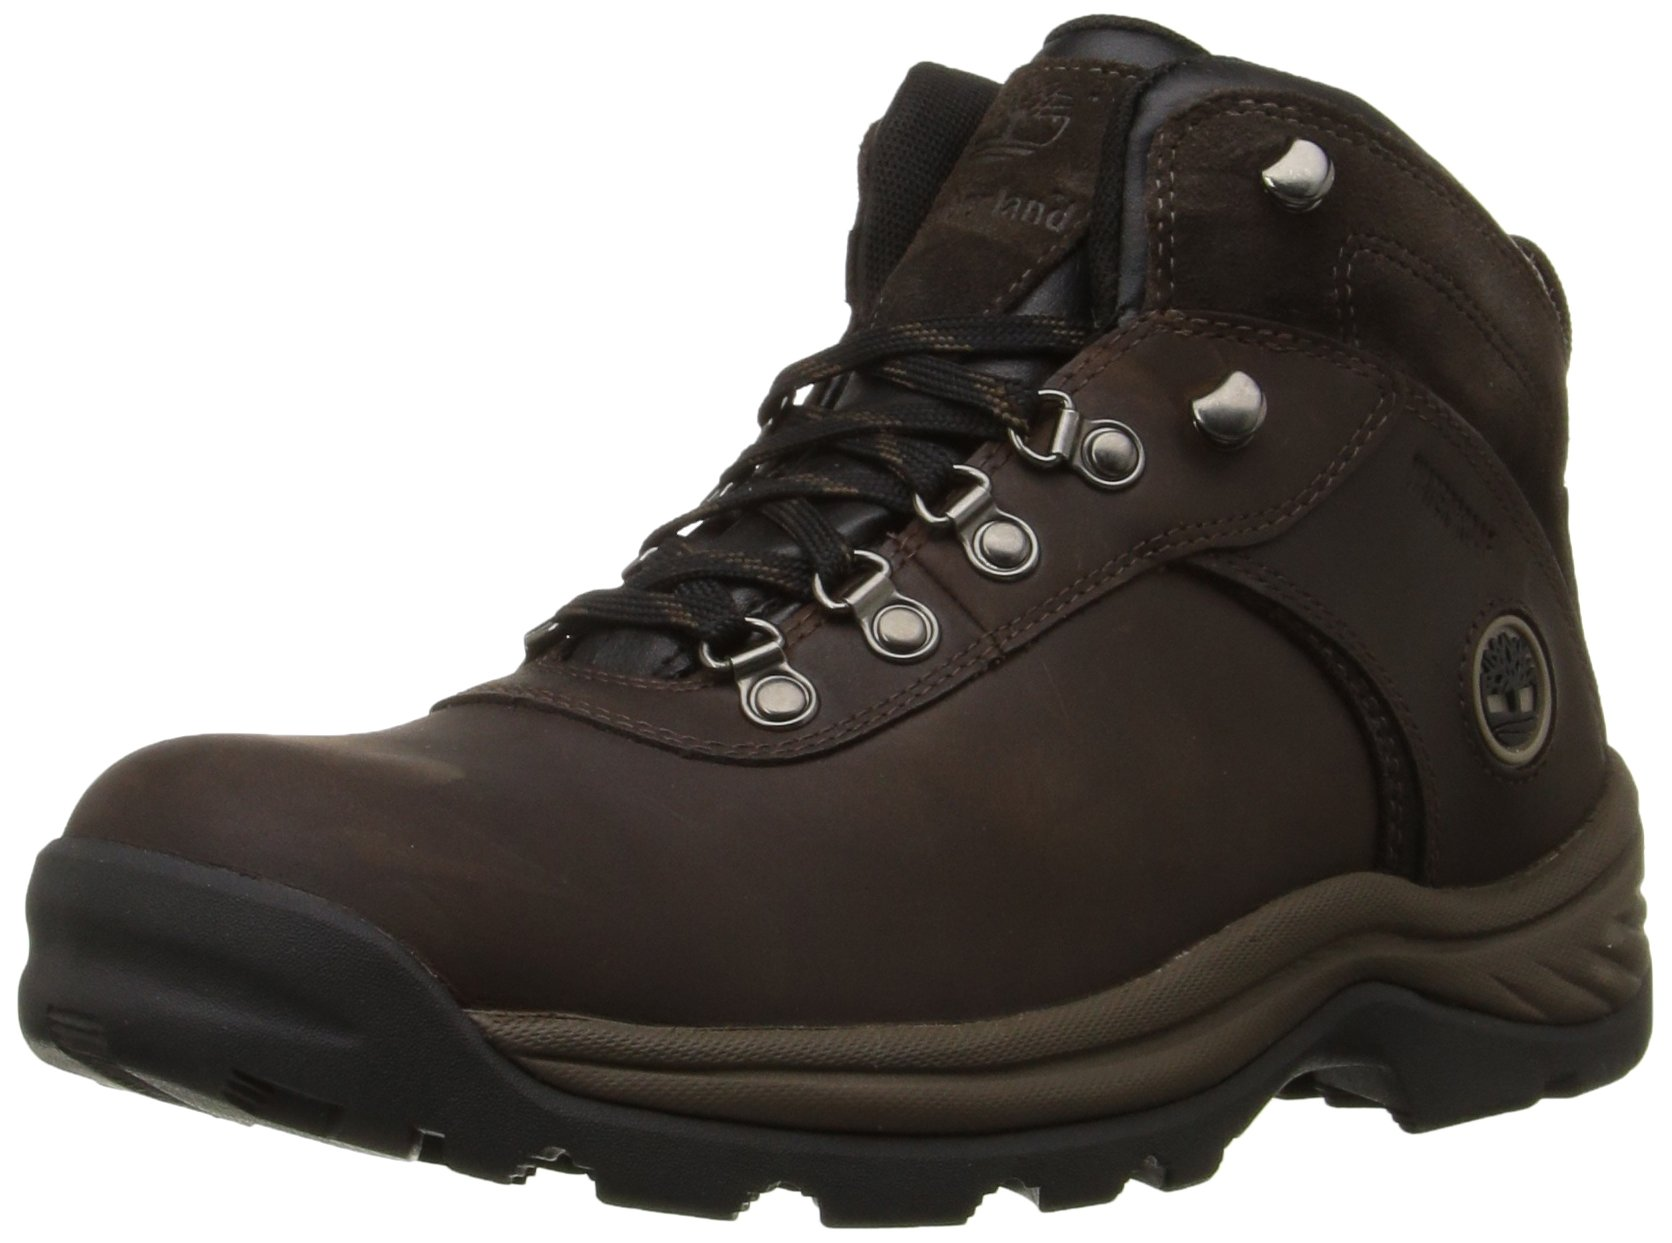 Timberland Men's Flume Waterproof Boot,Dark Brown,11.5 M US by Timberland